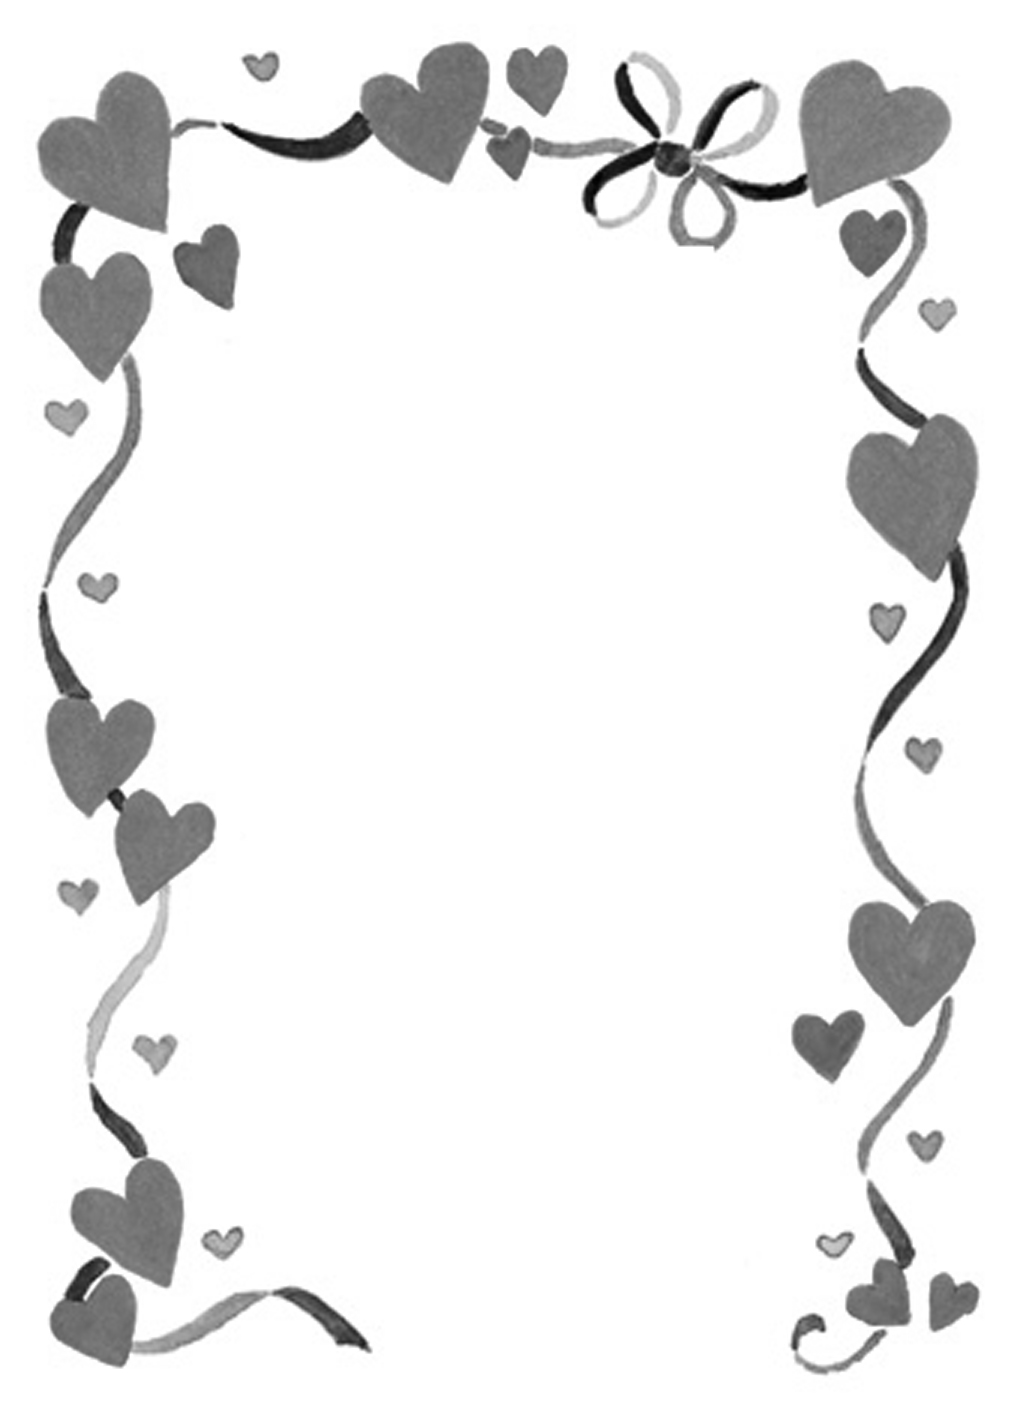 free wedding watermark clipart - photo #44